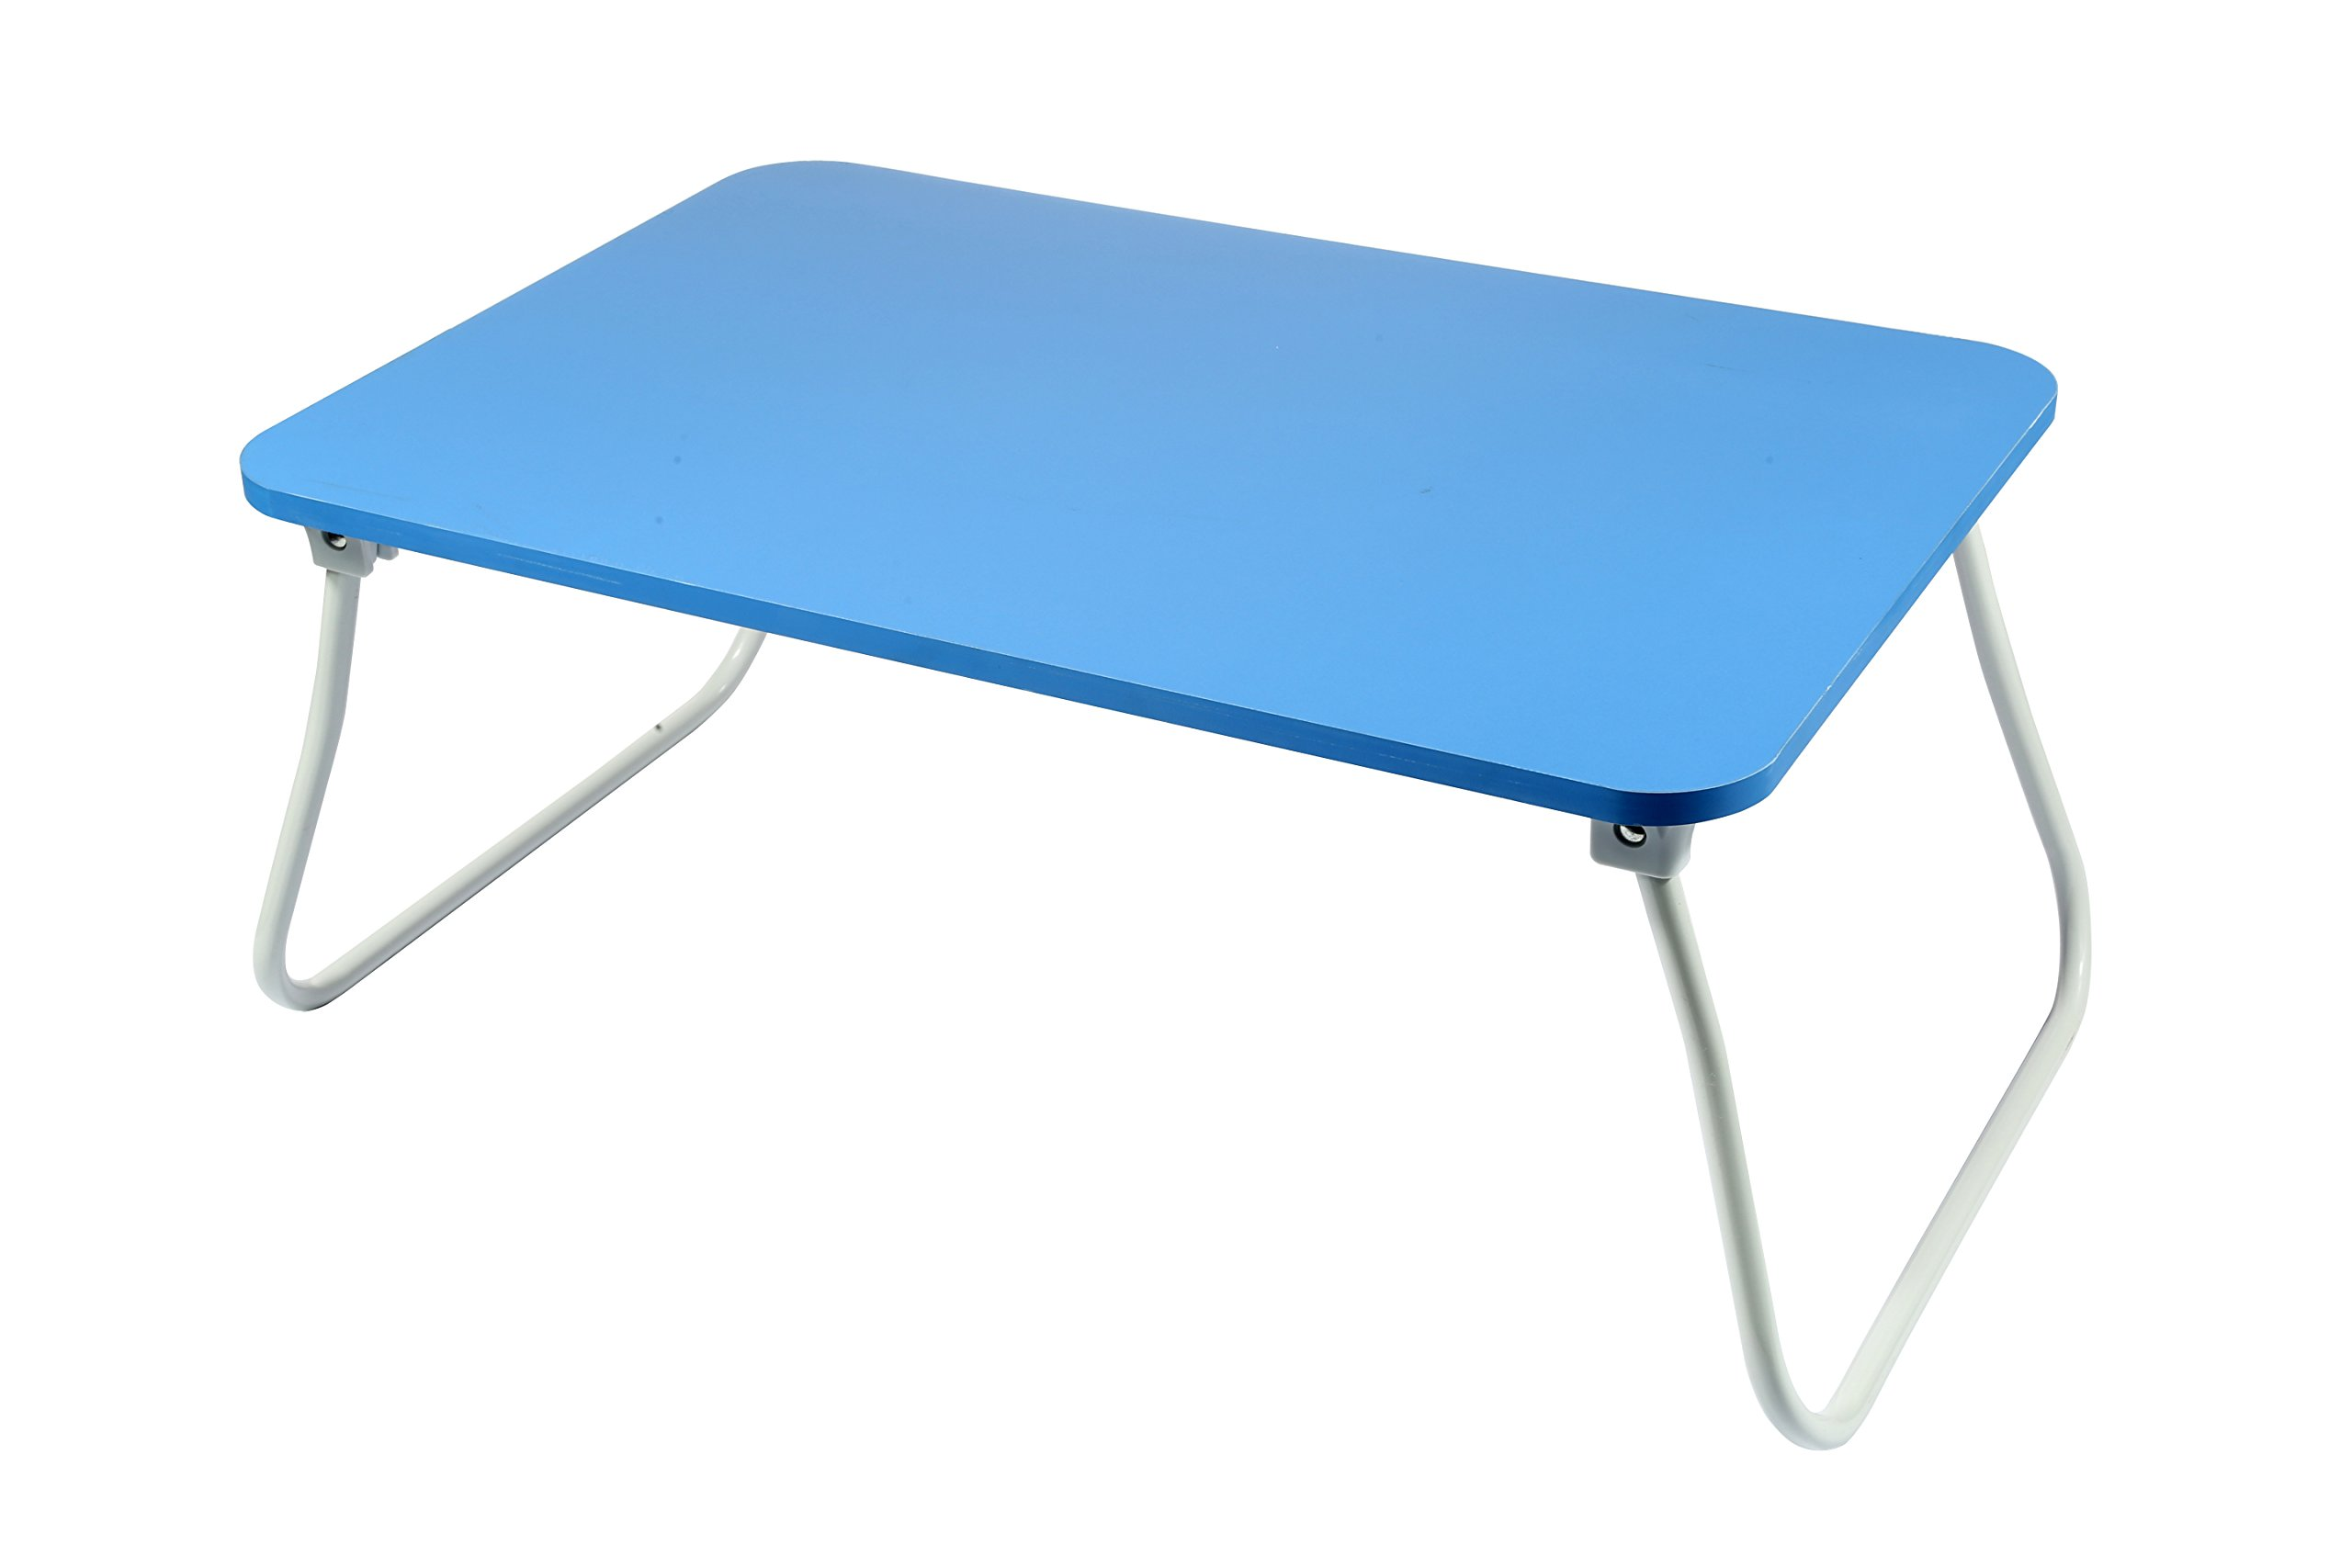 Homebi Lap Desk Tray Table Laptop Stand Portable Bed Desk Breakfast Tray for Bed Couch and Sofa with MDF Top Board and Foldable Metal Legs (11.20''H, Blue)